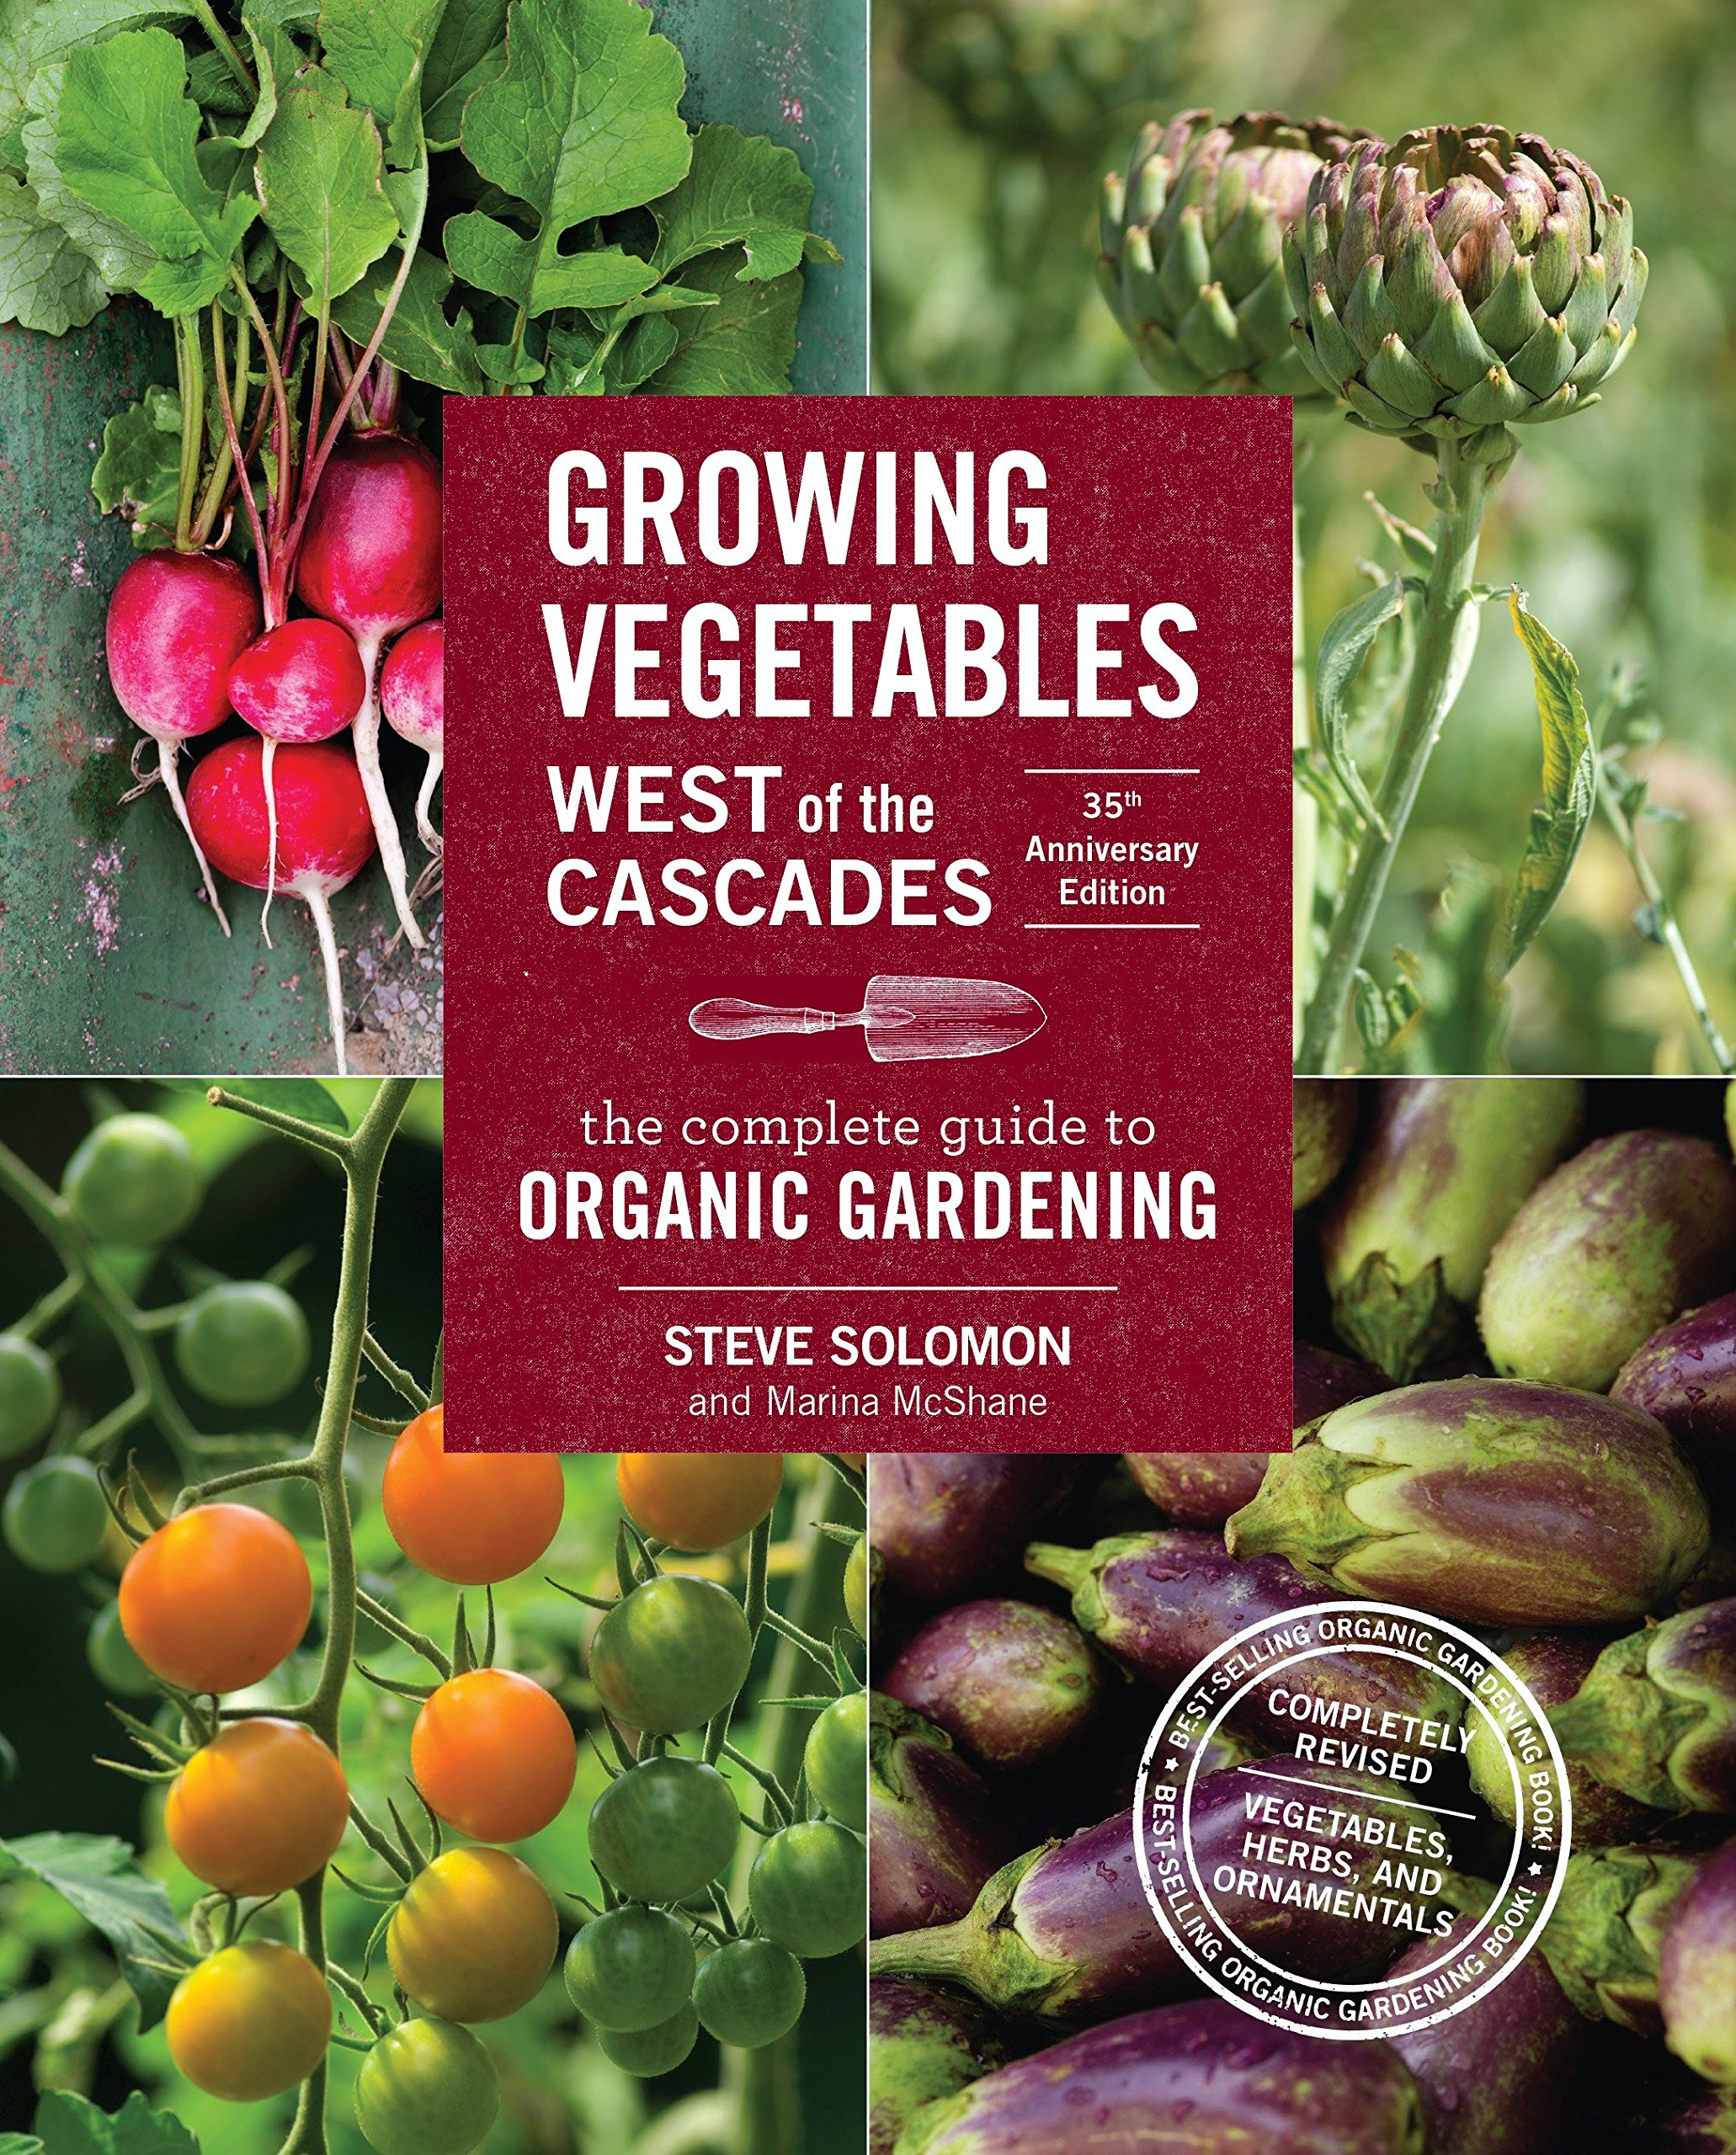 Growing Vegetables West of the Cascades, 35th Anniversary Edition: The Complete Guide to Organic Gardening by SASQUATCH